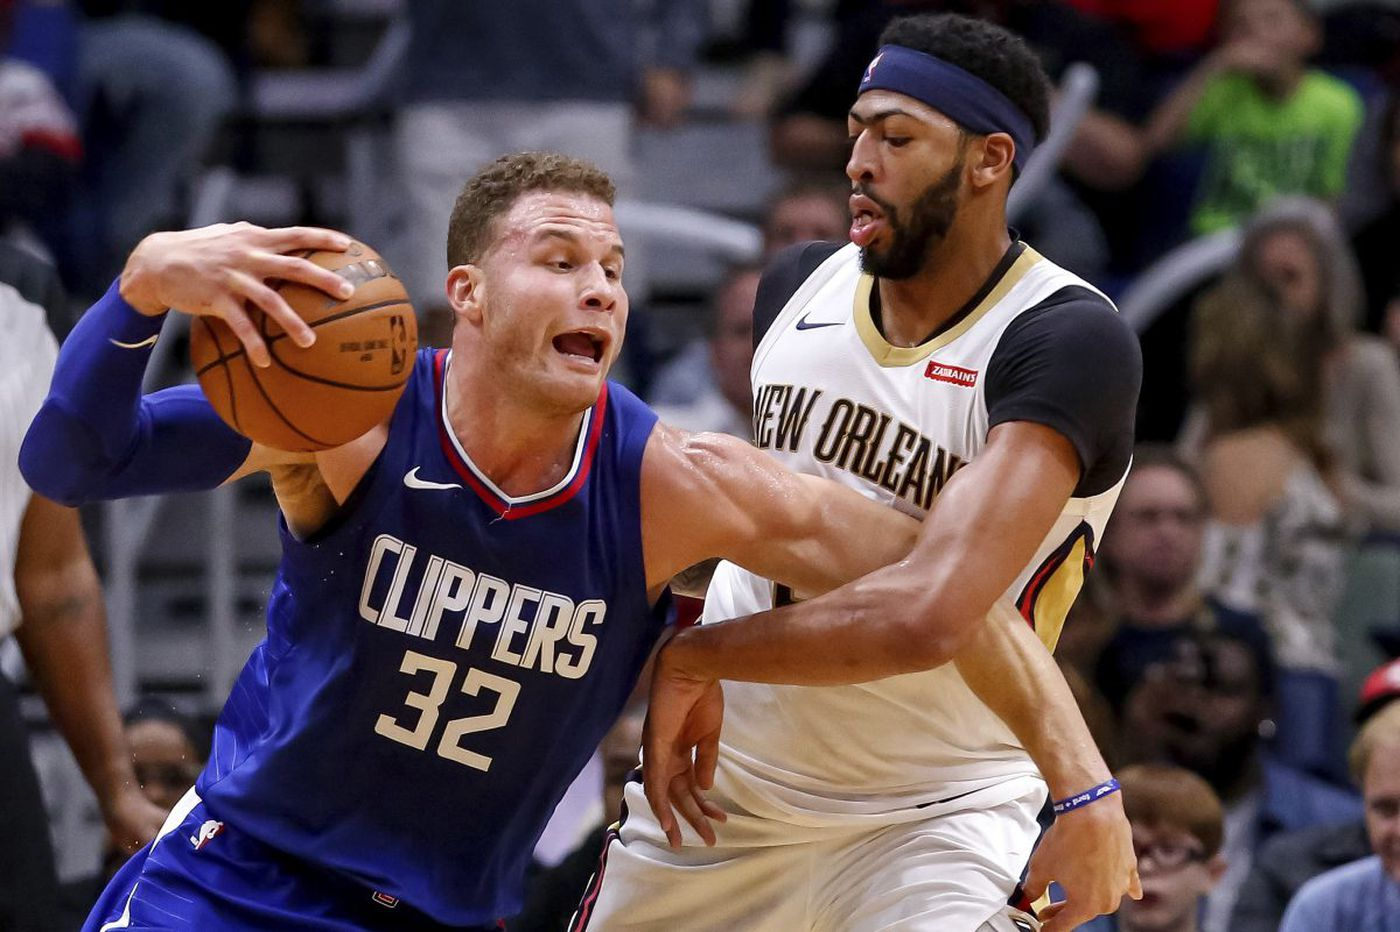 Sixers-Clippers preview: Looking to contain Blake Griffin, DeAndre Jordan